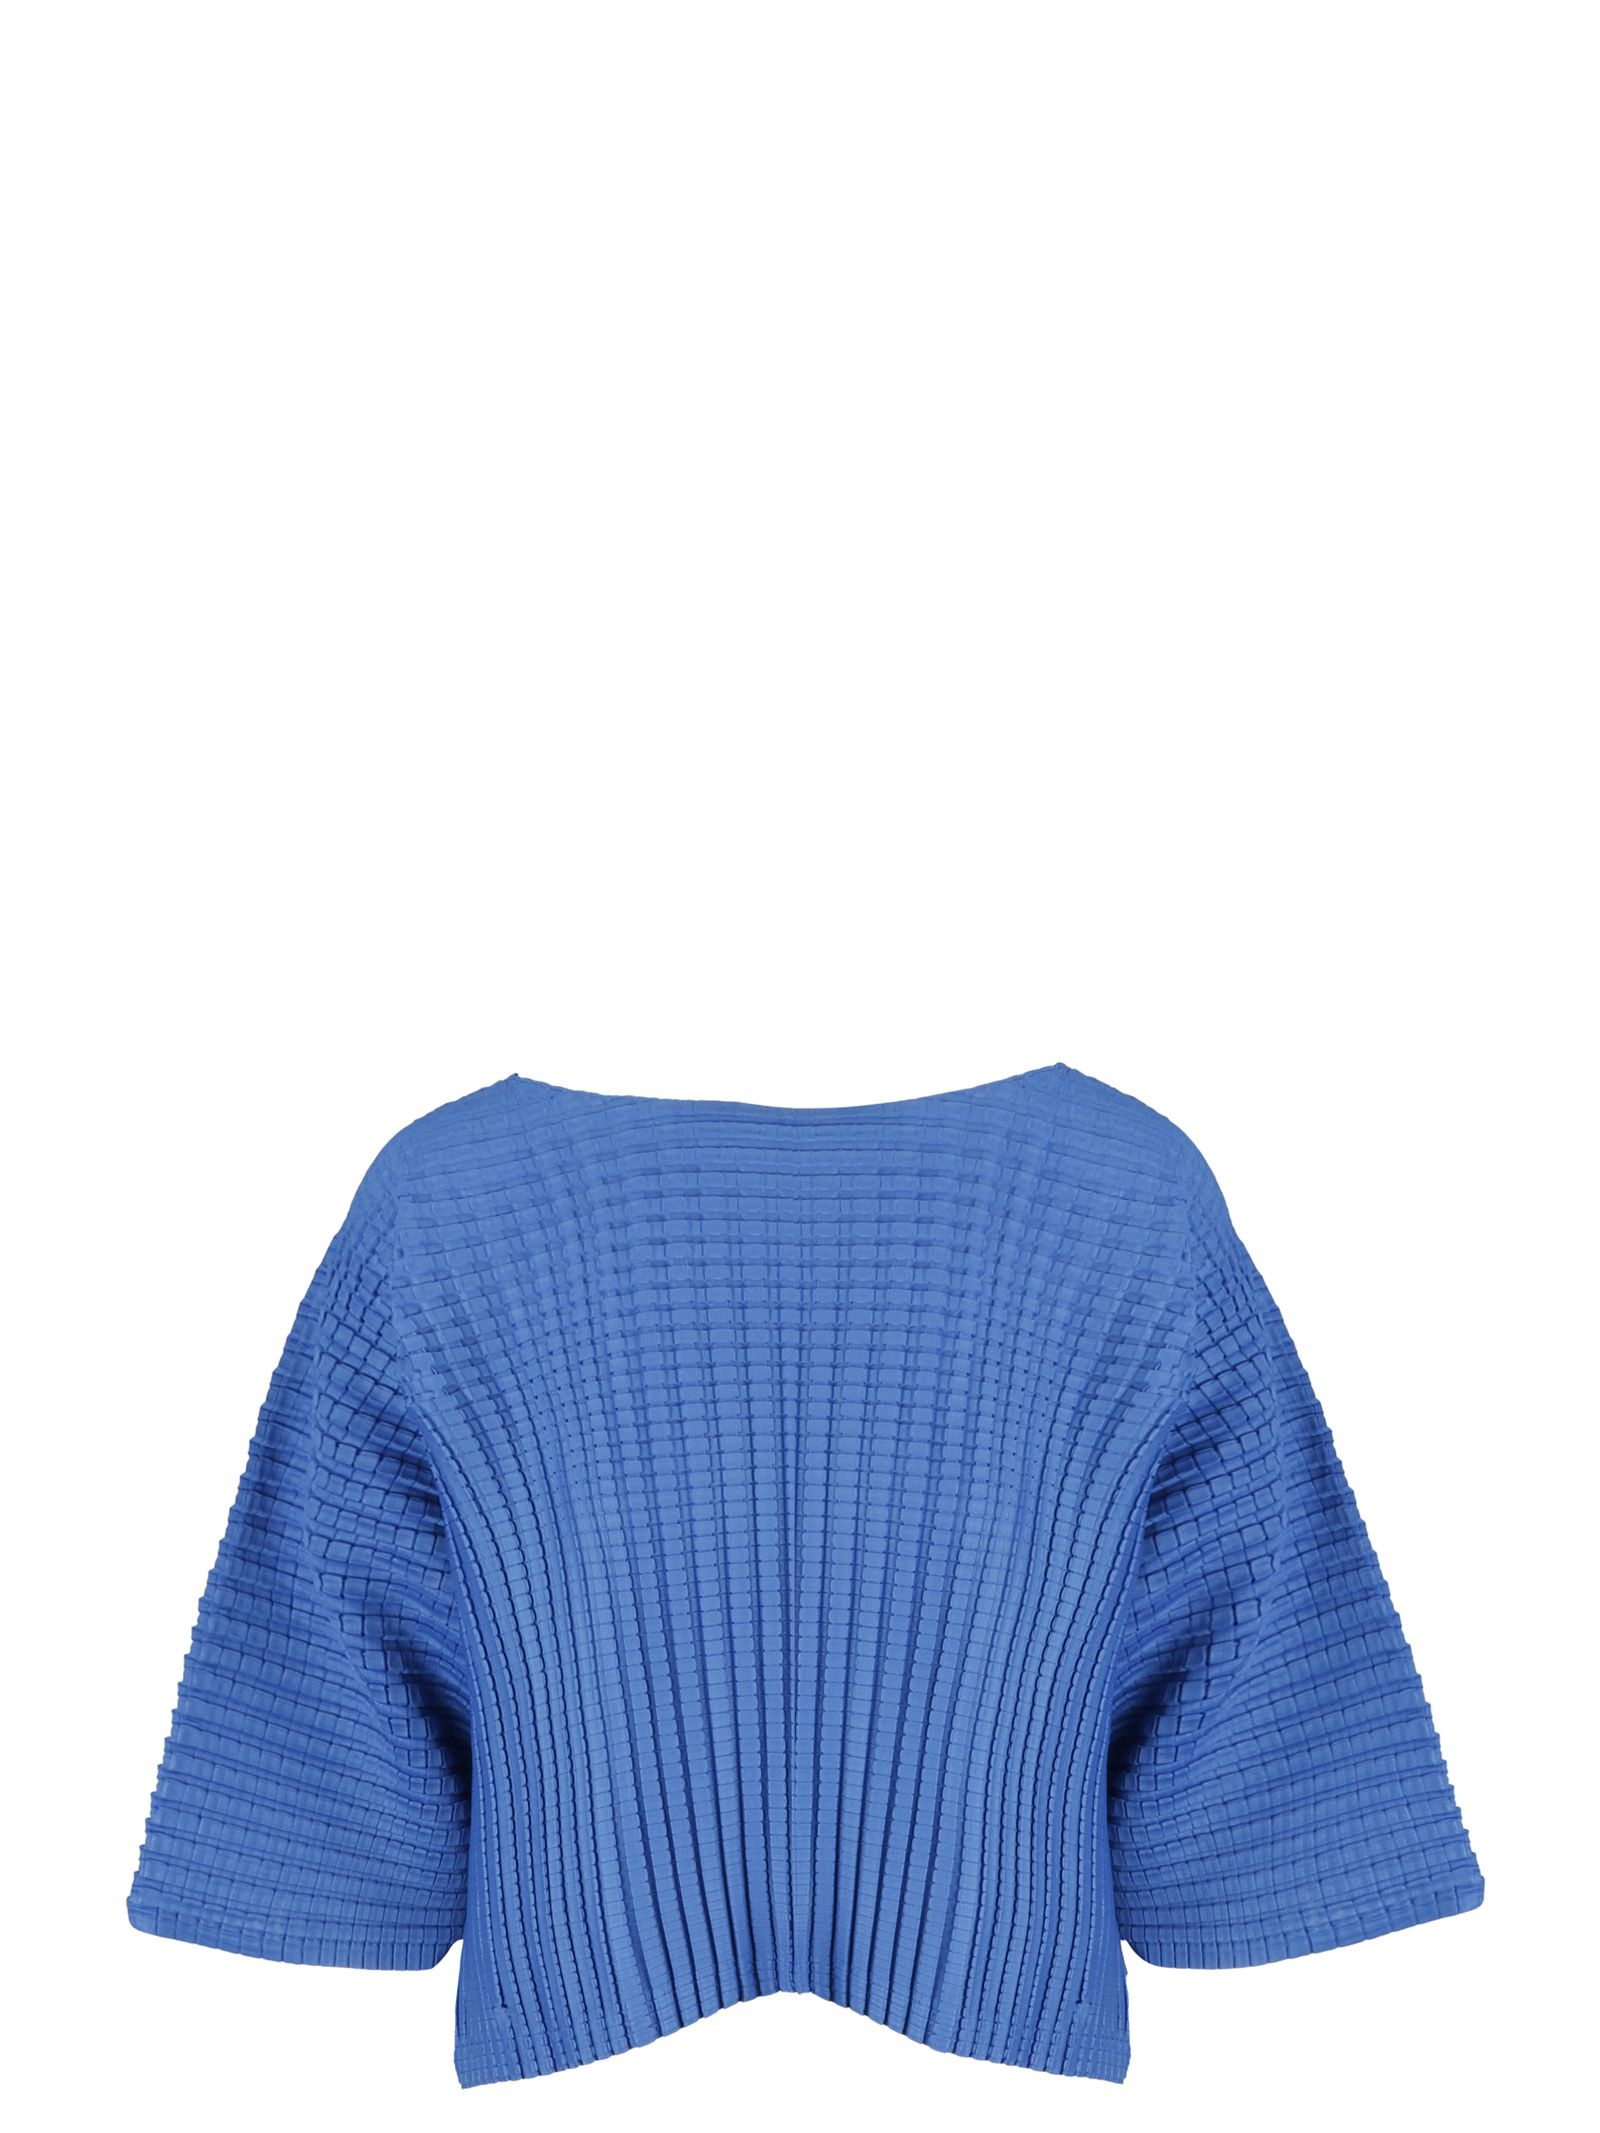 PLEATS PLEASE ISSEY MIYAKE Pleats Please By Issey Miyake Textured Top in Blue